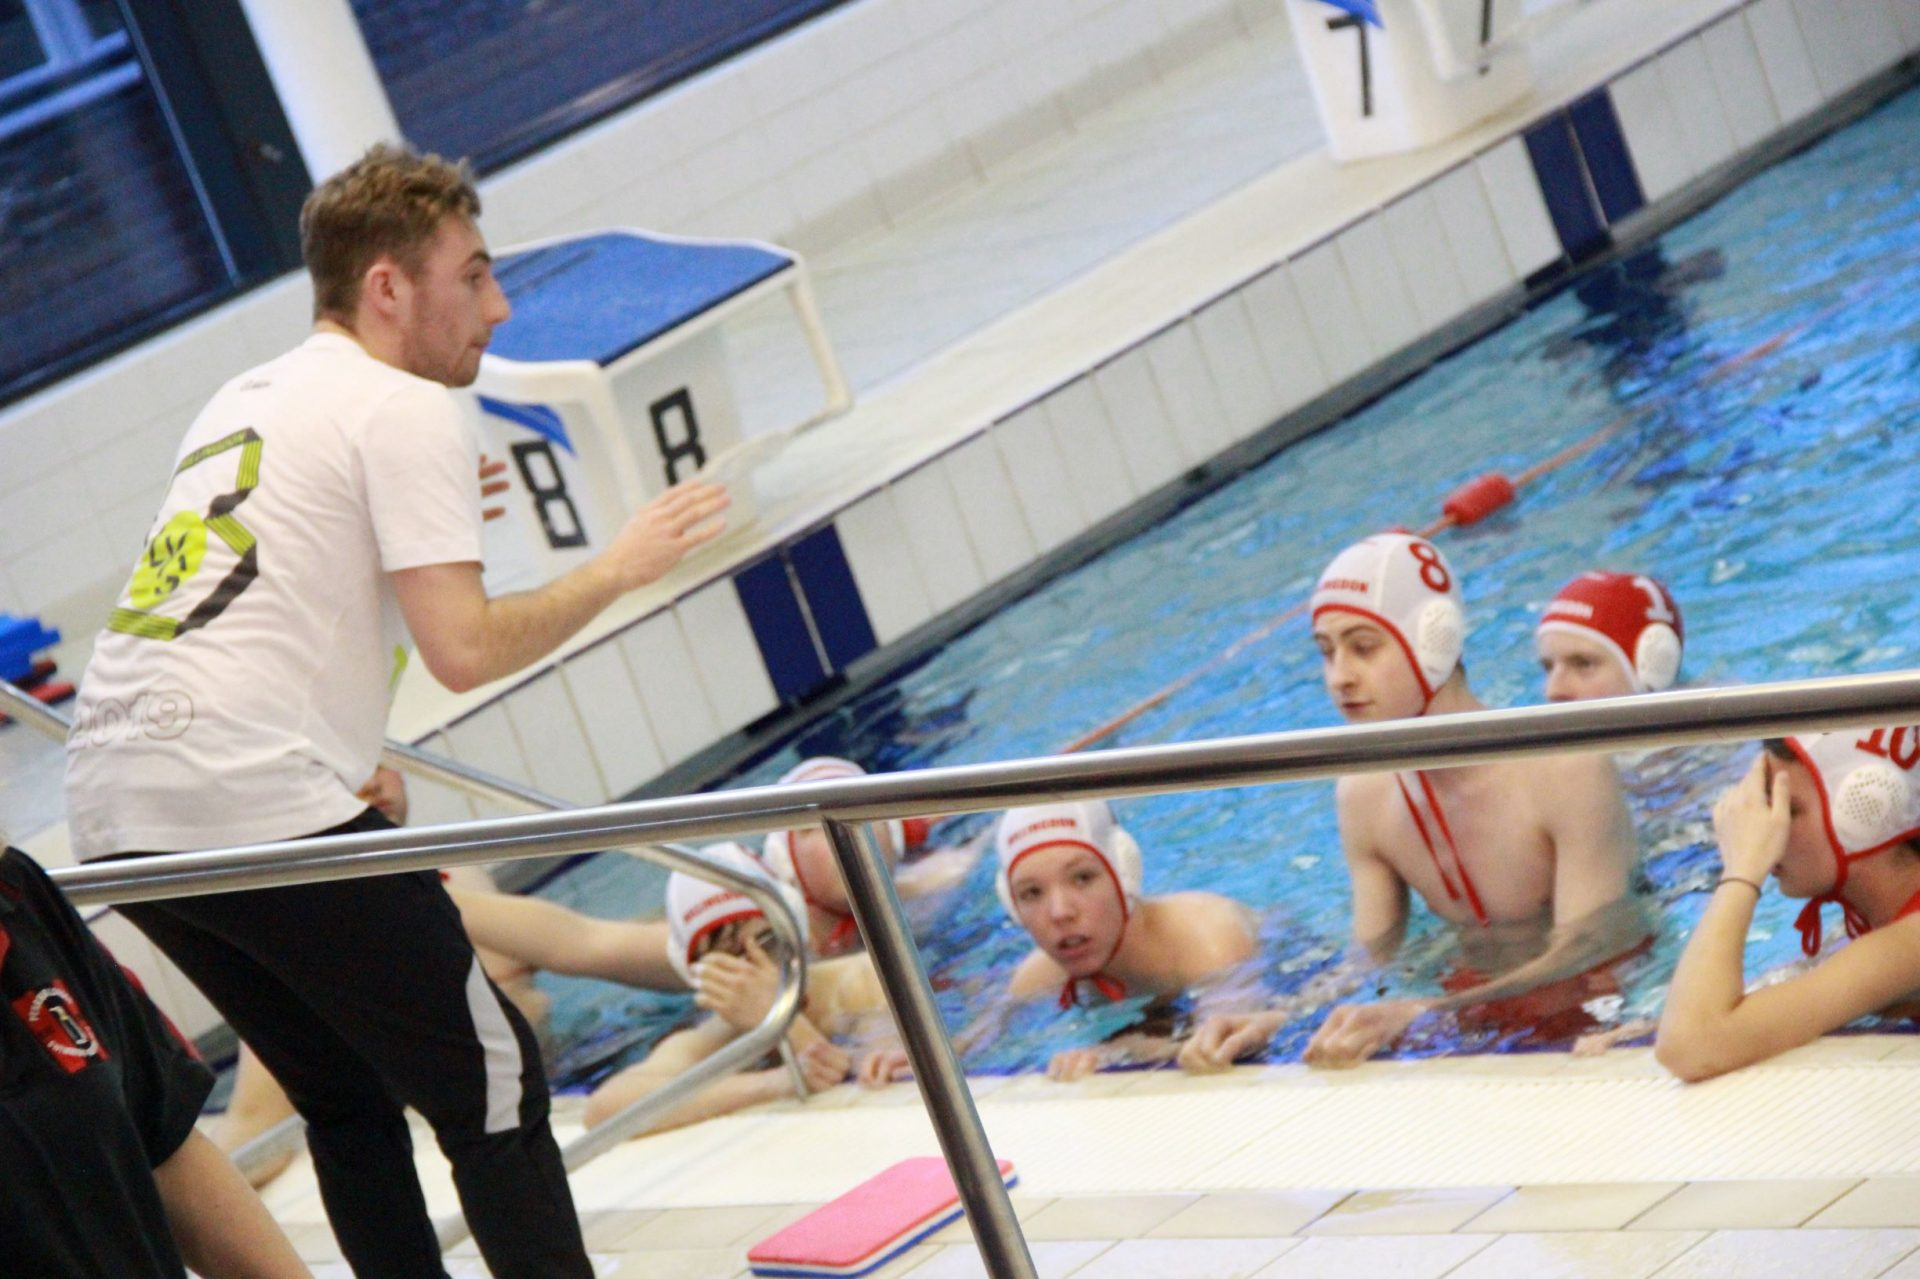 Adma Maidment coaching on the poolside